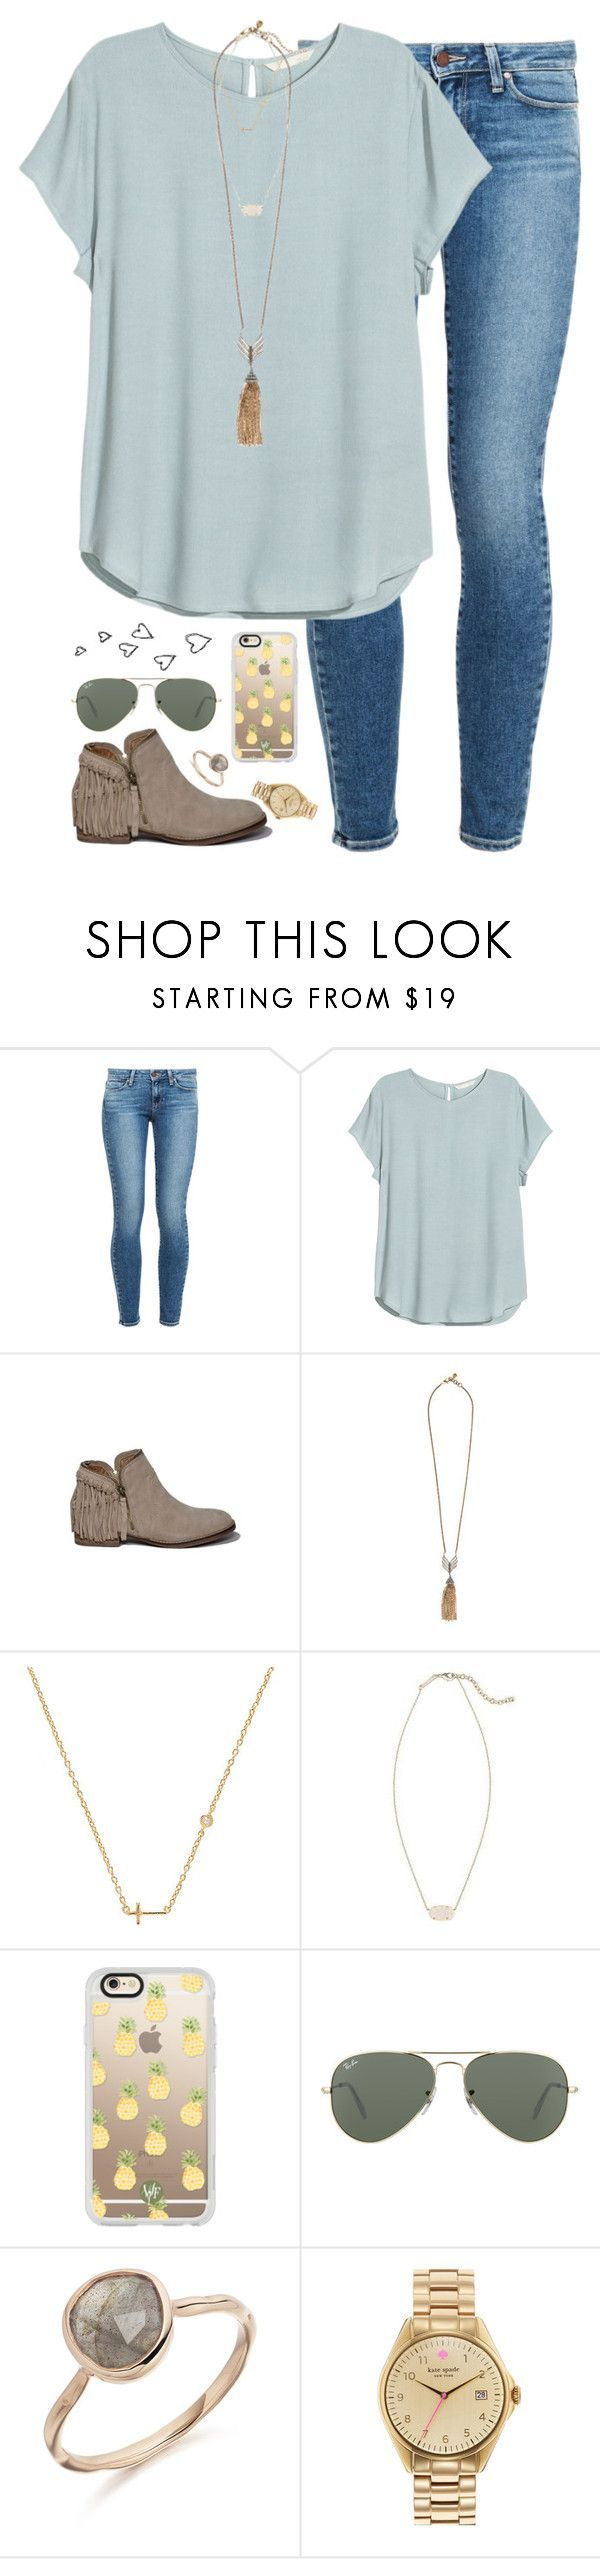 """when you realize your bf has the same basketball number as Michael Jordan"" by kaley-ii ❤ liked on Polyvore featuring Paige Denim, Abercrombie & Fitch, Lulu Frost, Sydney Evan, Kendra Scott, Casetify, Ray-Ban and Kate Spade"